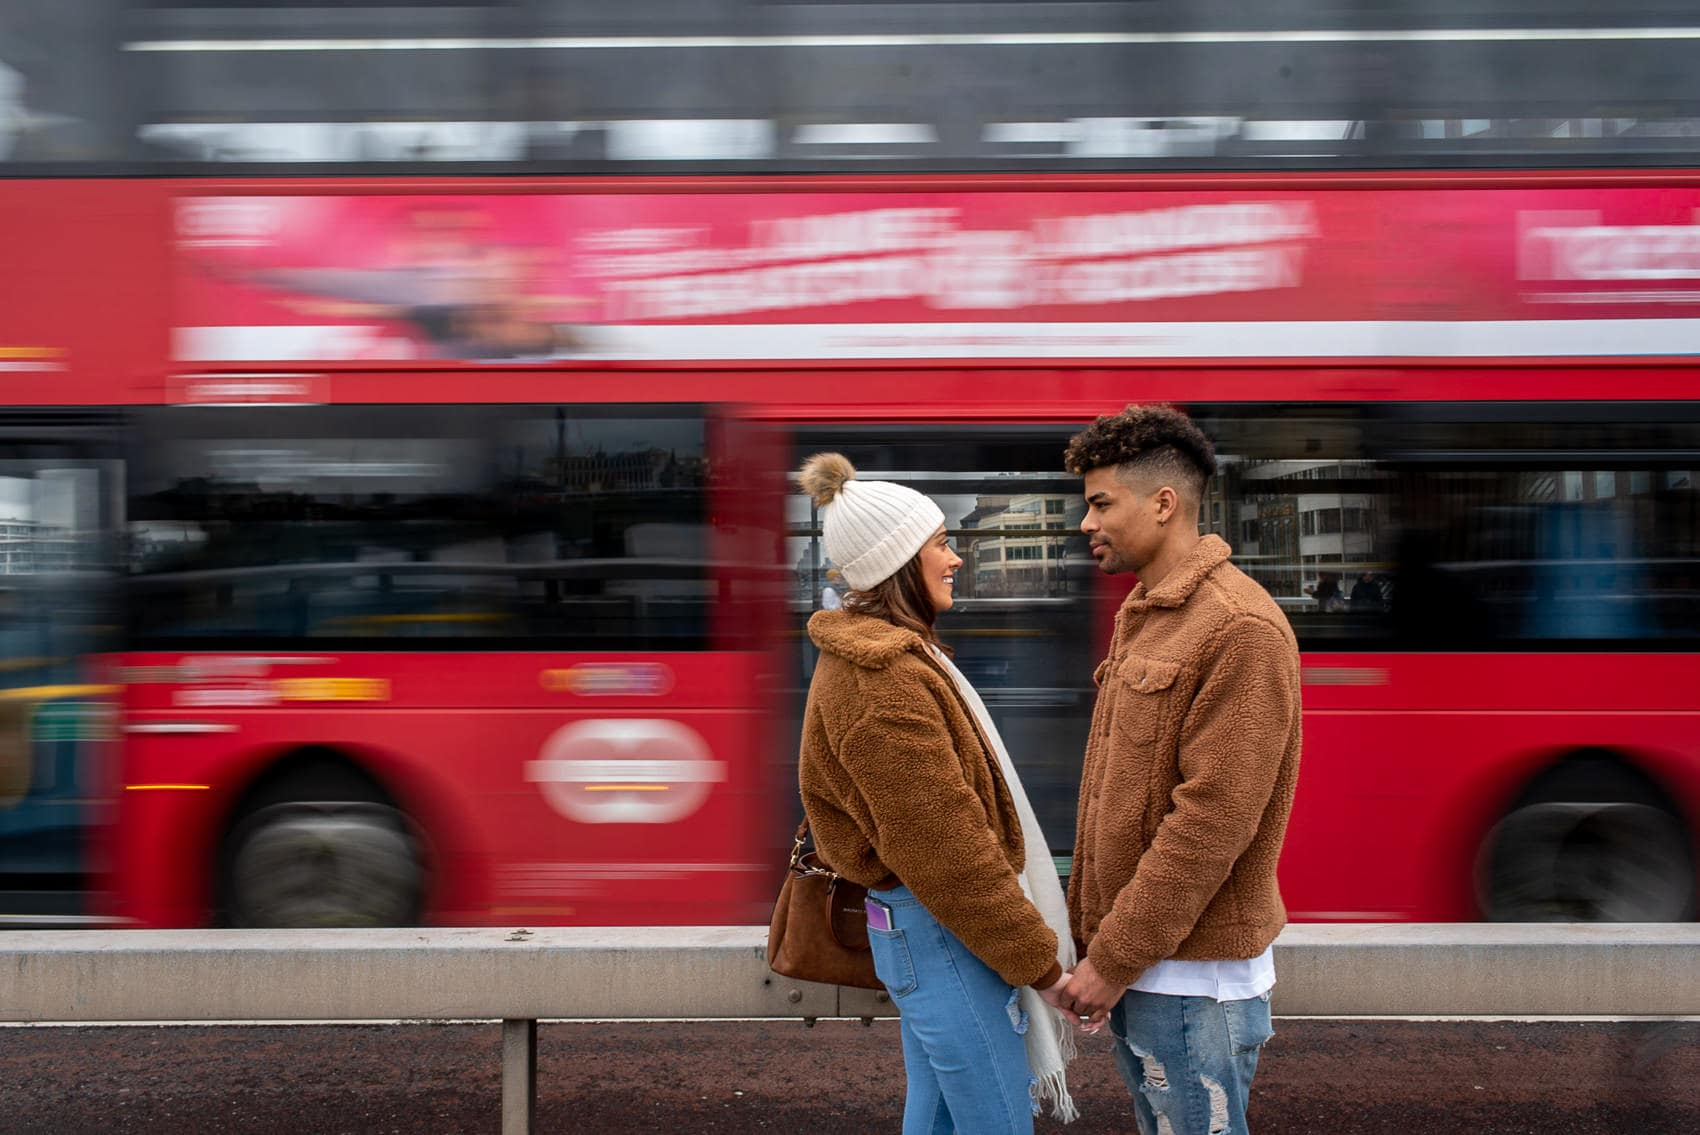 Couple posing in front of red London bus as it speeds past. Taken using motion blur